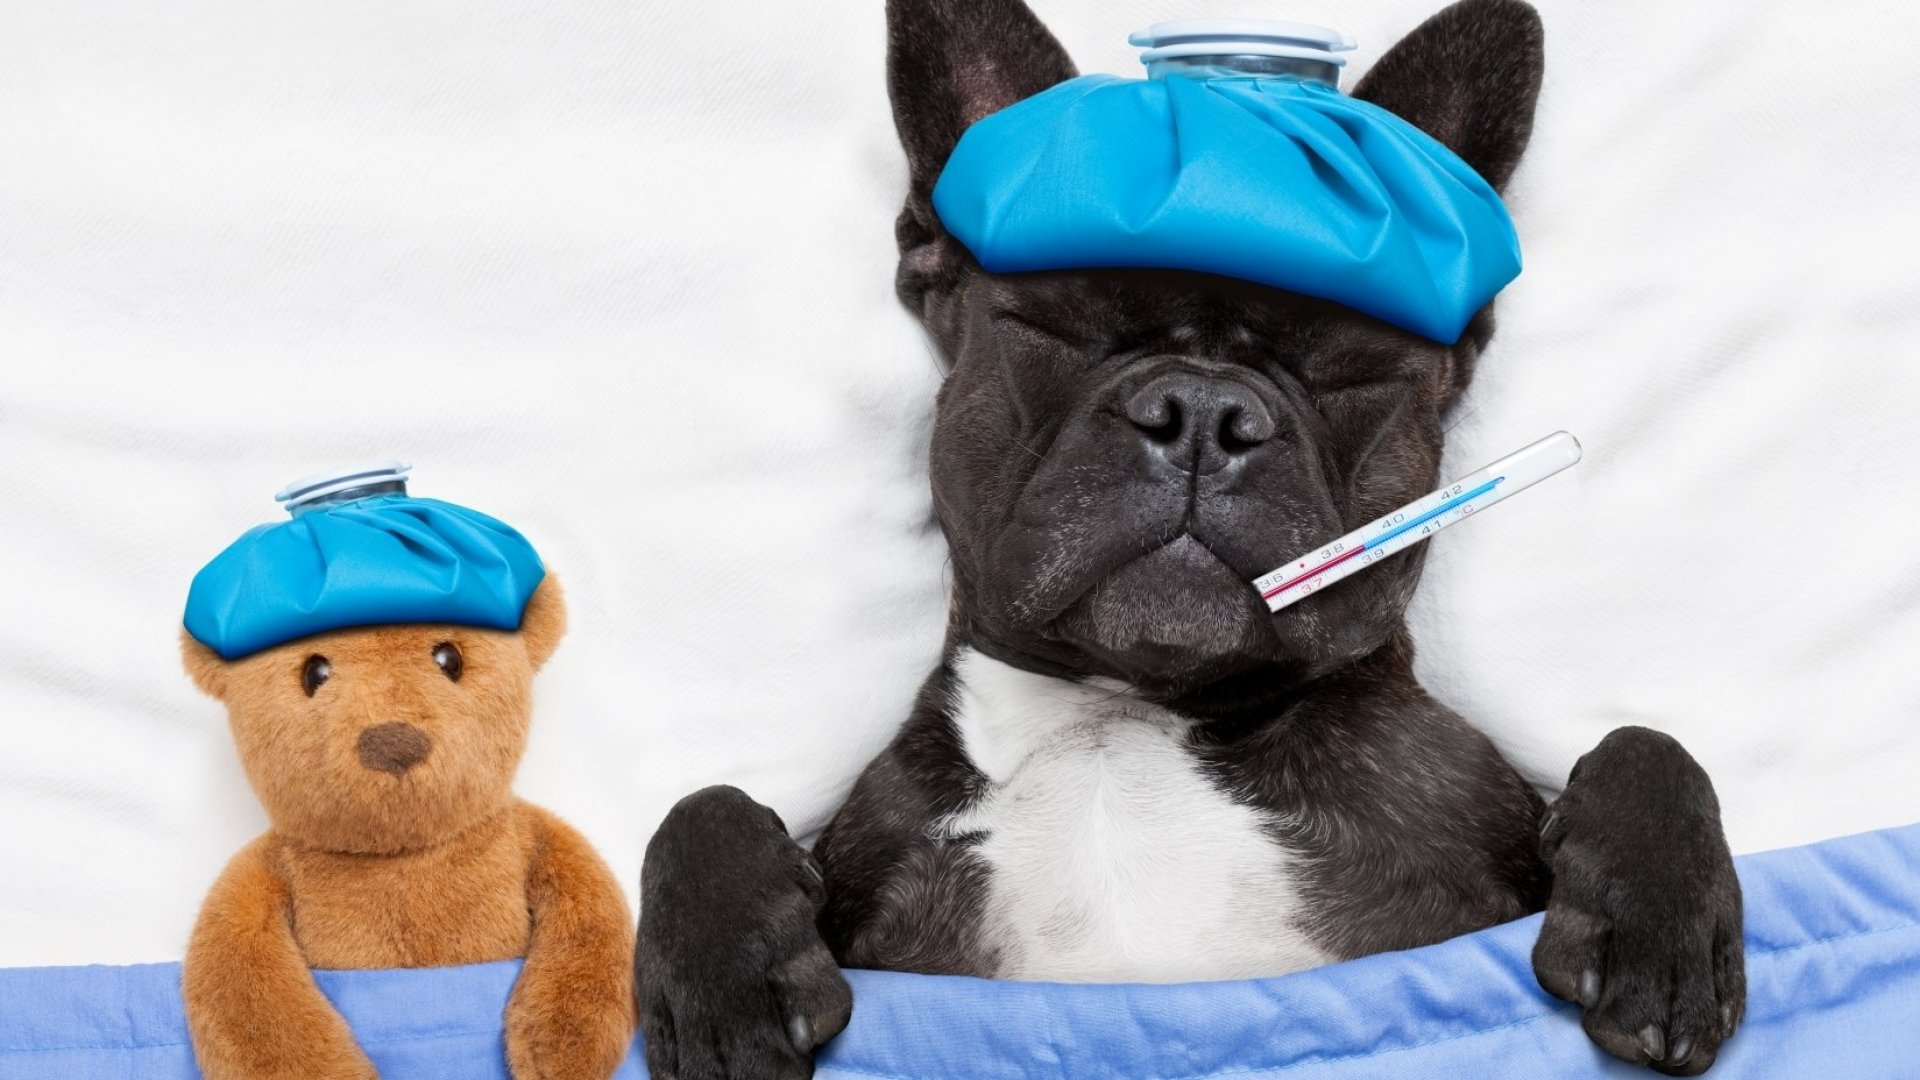 The Flu This Year Is Bad. Here's How to Keep Yourself (and Office) Healthy and Safe